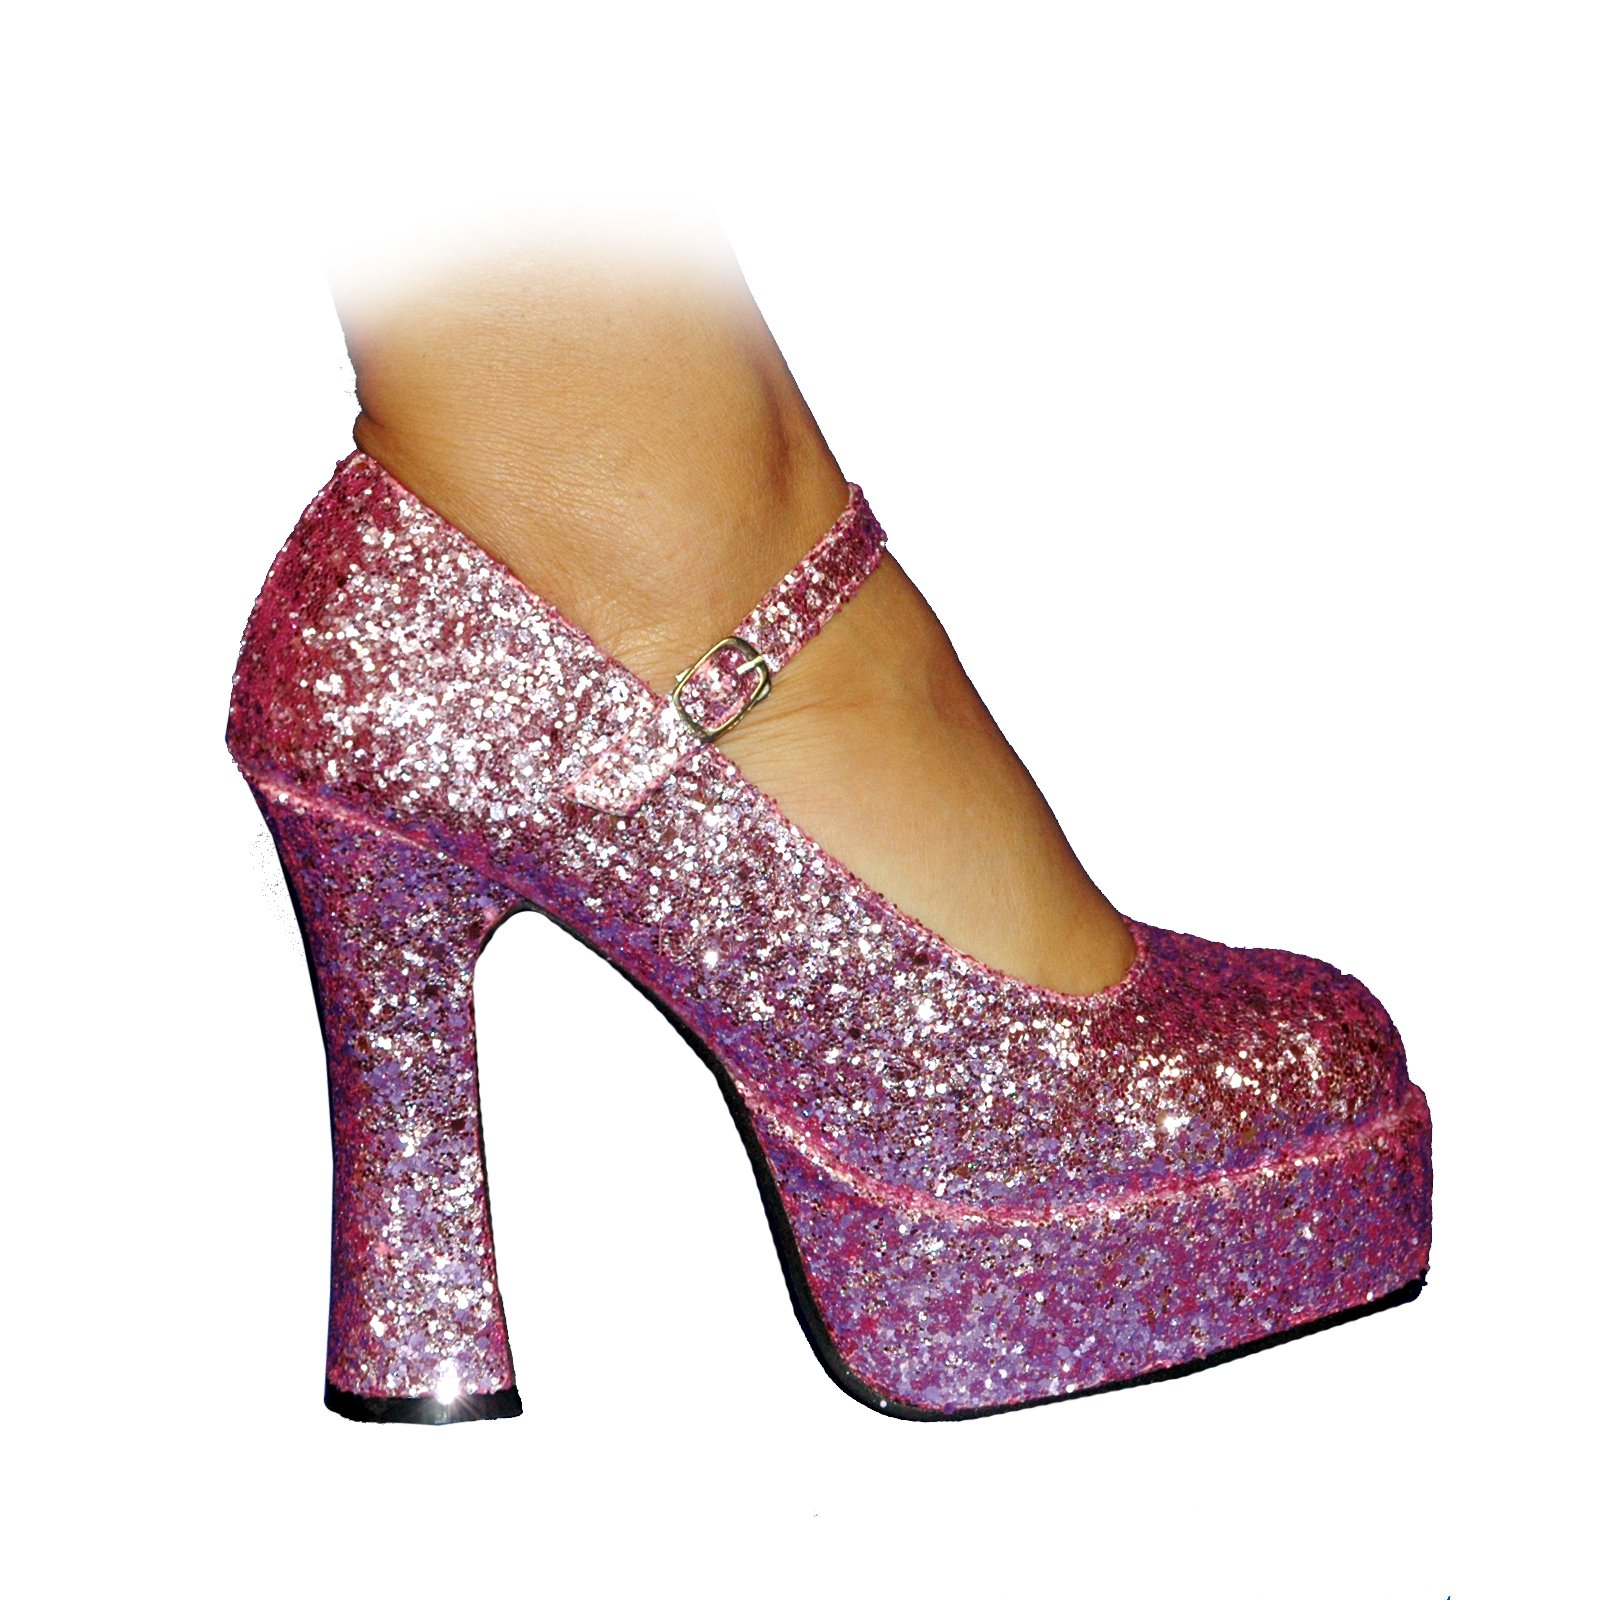 these shoes pink color photo 589315 fanpop